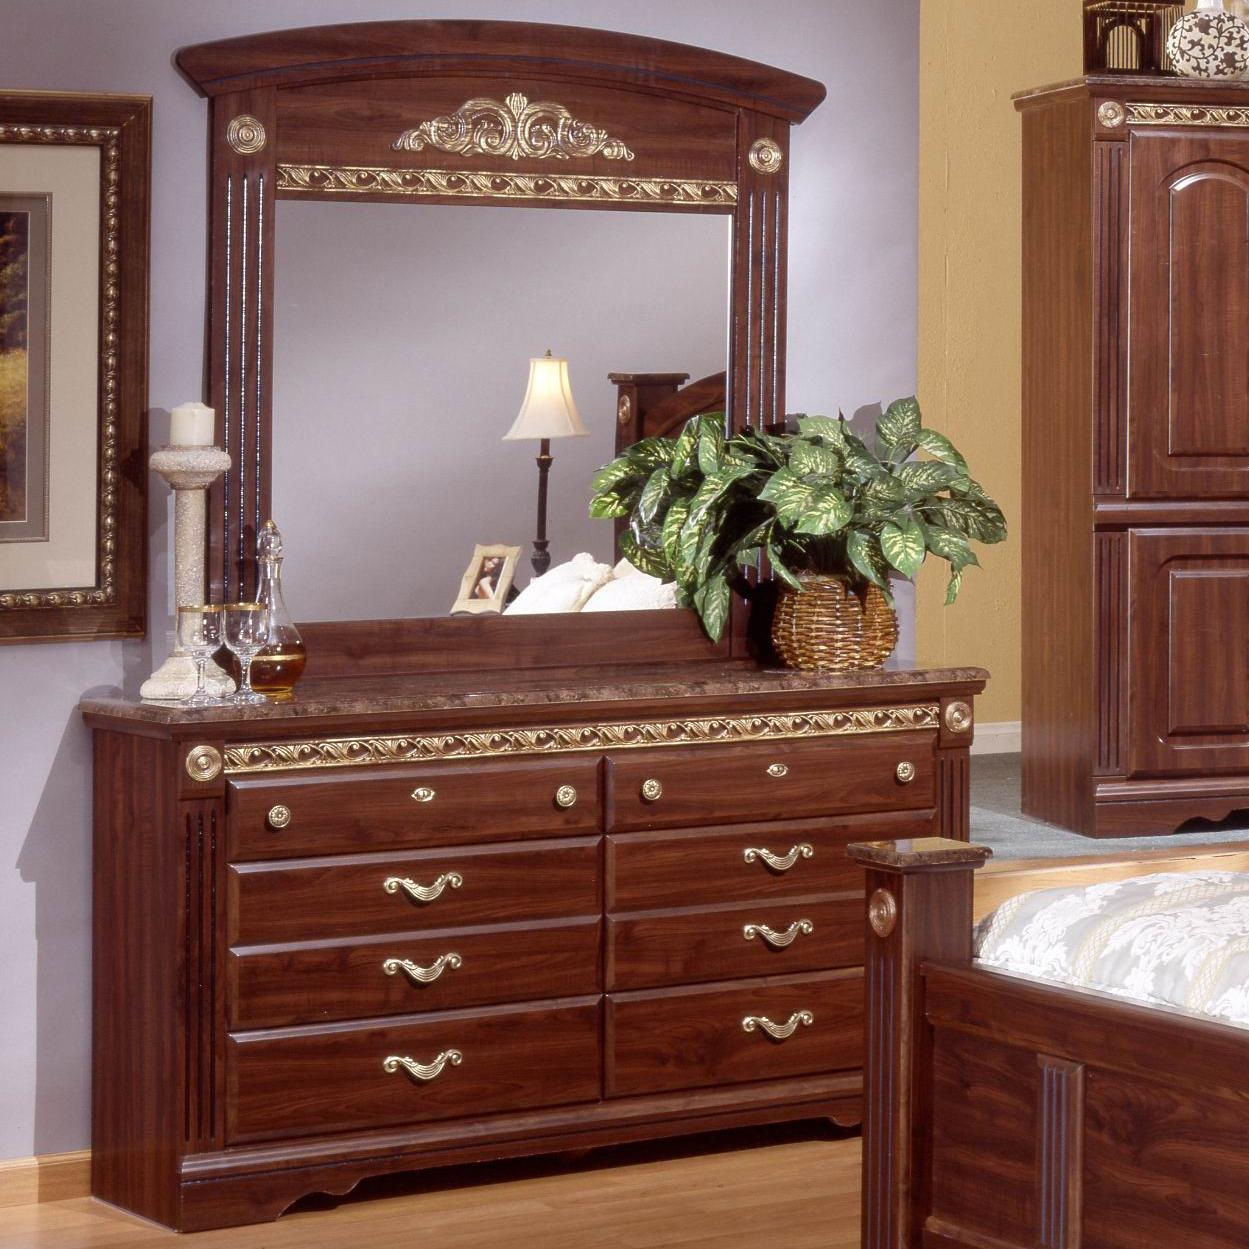 Sandberg Furniture Renaissance Marble Dresser & Mirror Set - Item Number: 17406+10